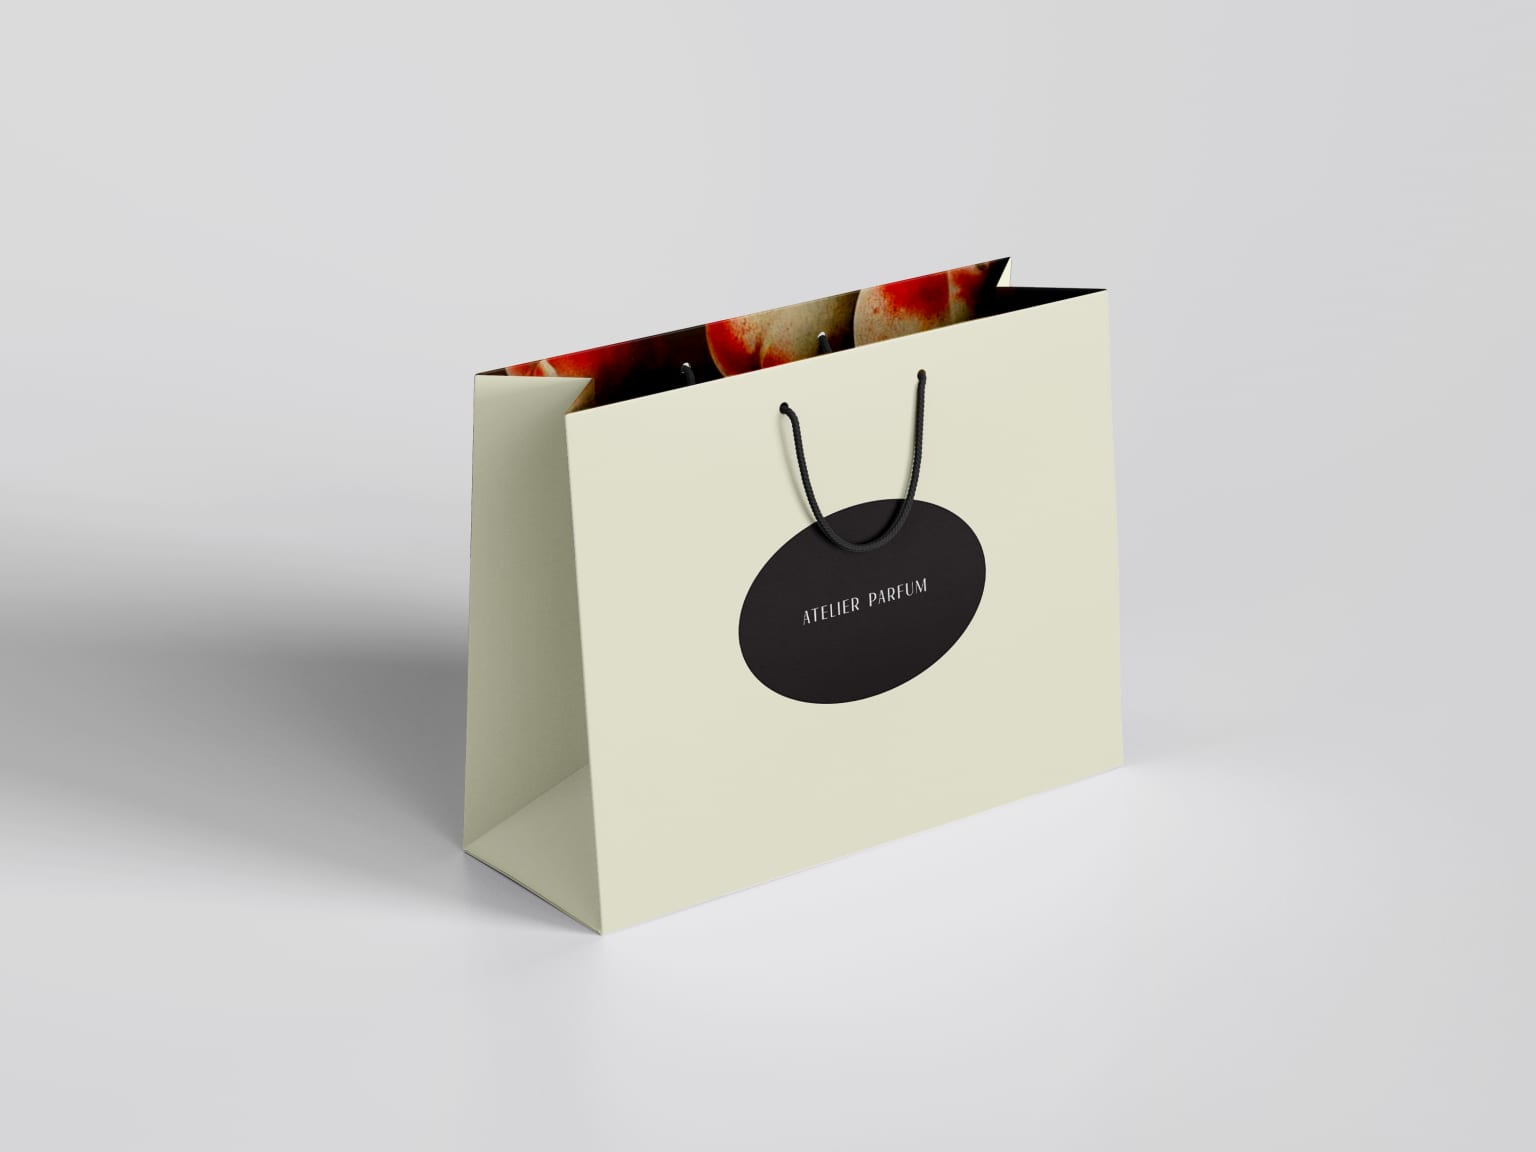 Atelier Parfum - Brand and Package Design